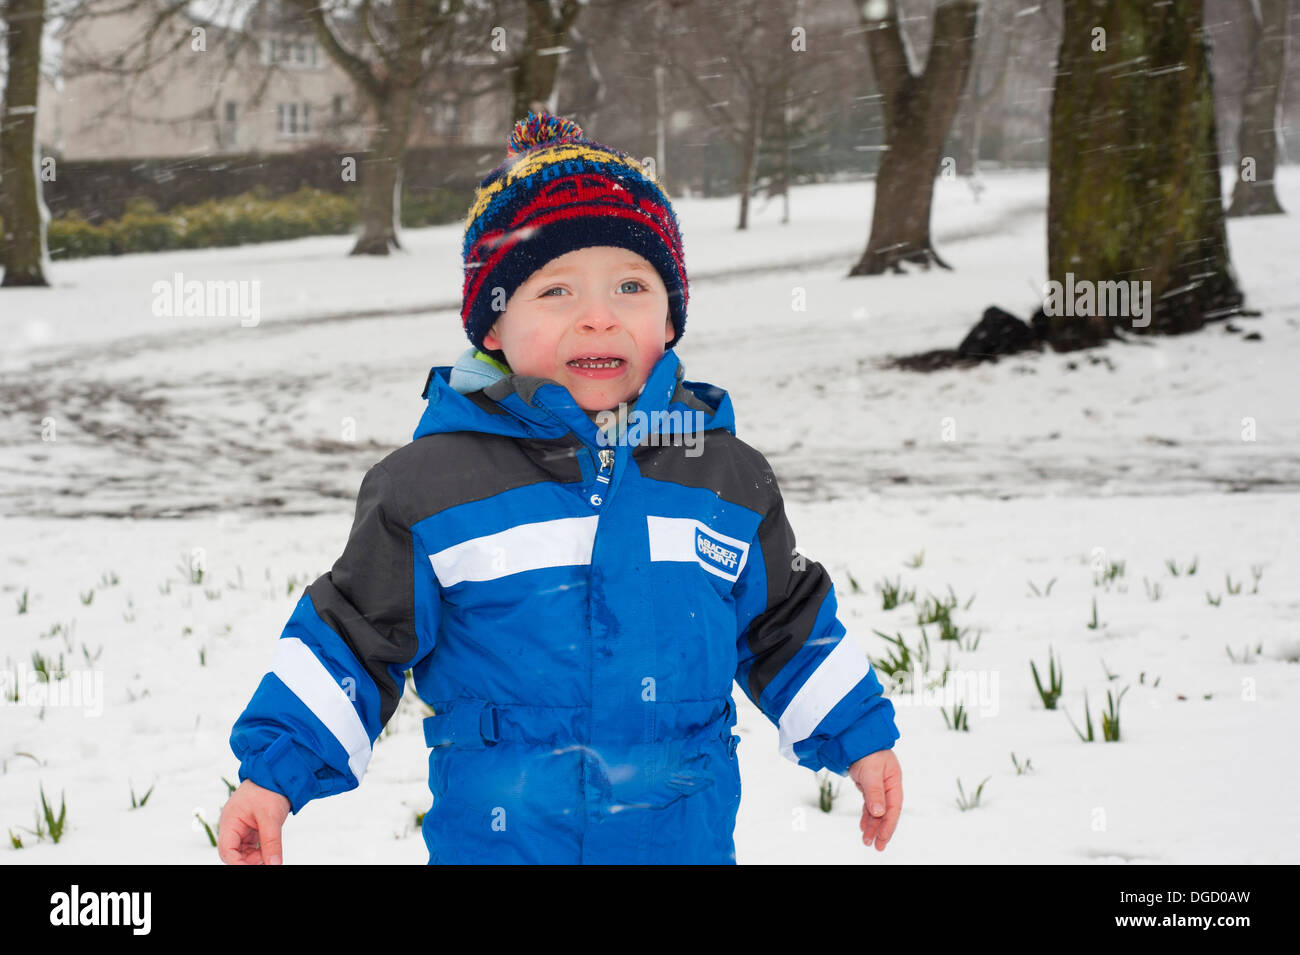 Young boy in snow blizzard looking cold - Stock Image